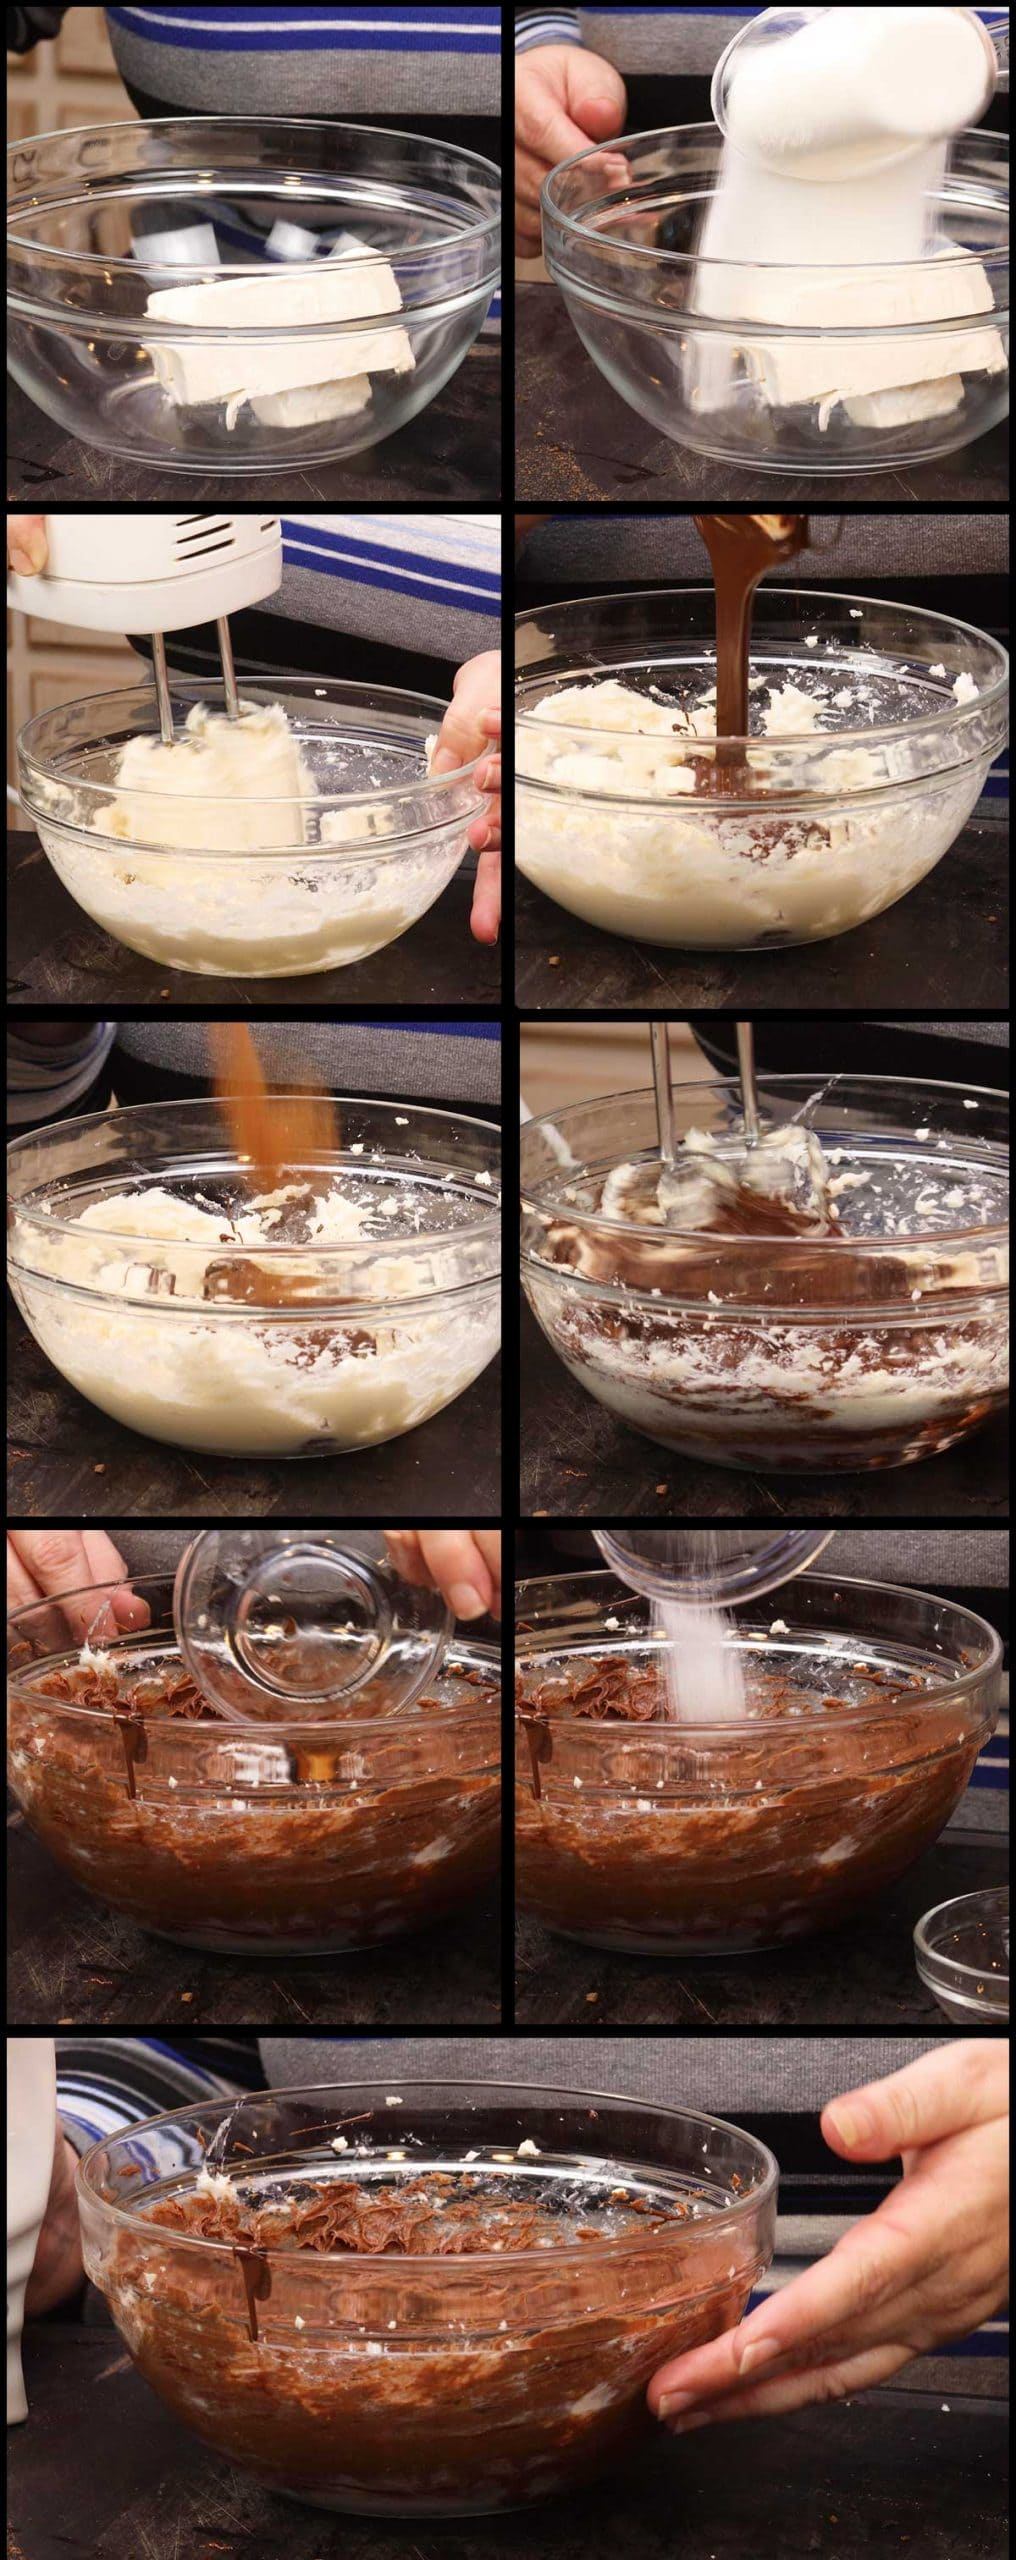 mixing up the triple chocolate cheesecake batter